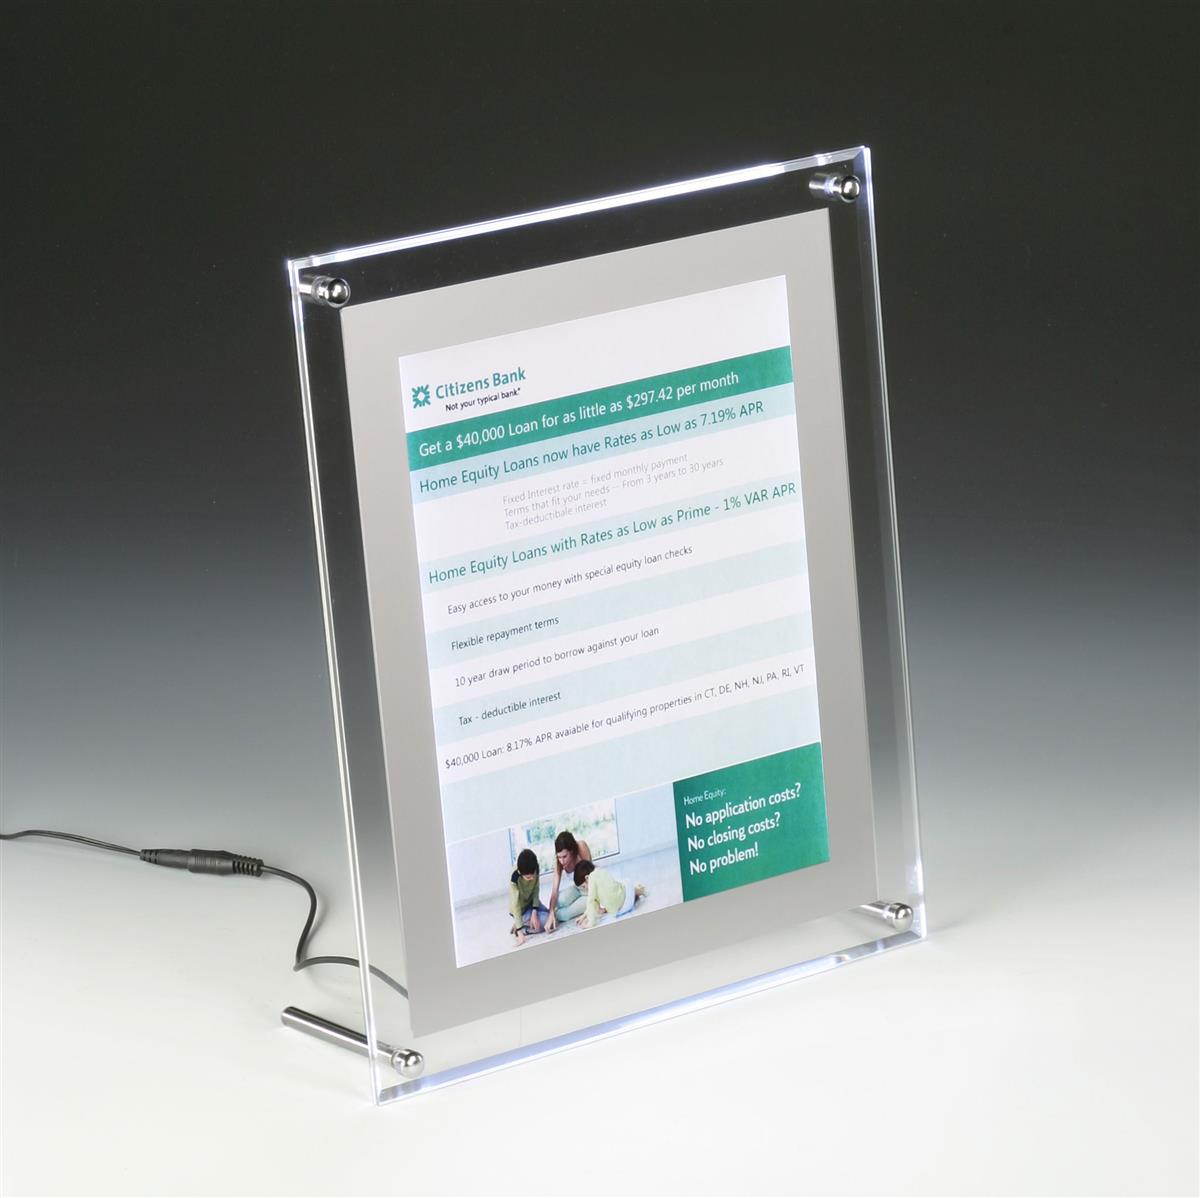 8 5 x 11 Acrylic Sign Holder for Tabletop or Wall, LED Illuminated - Clear